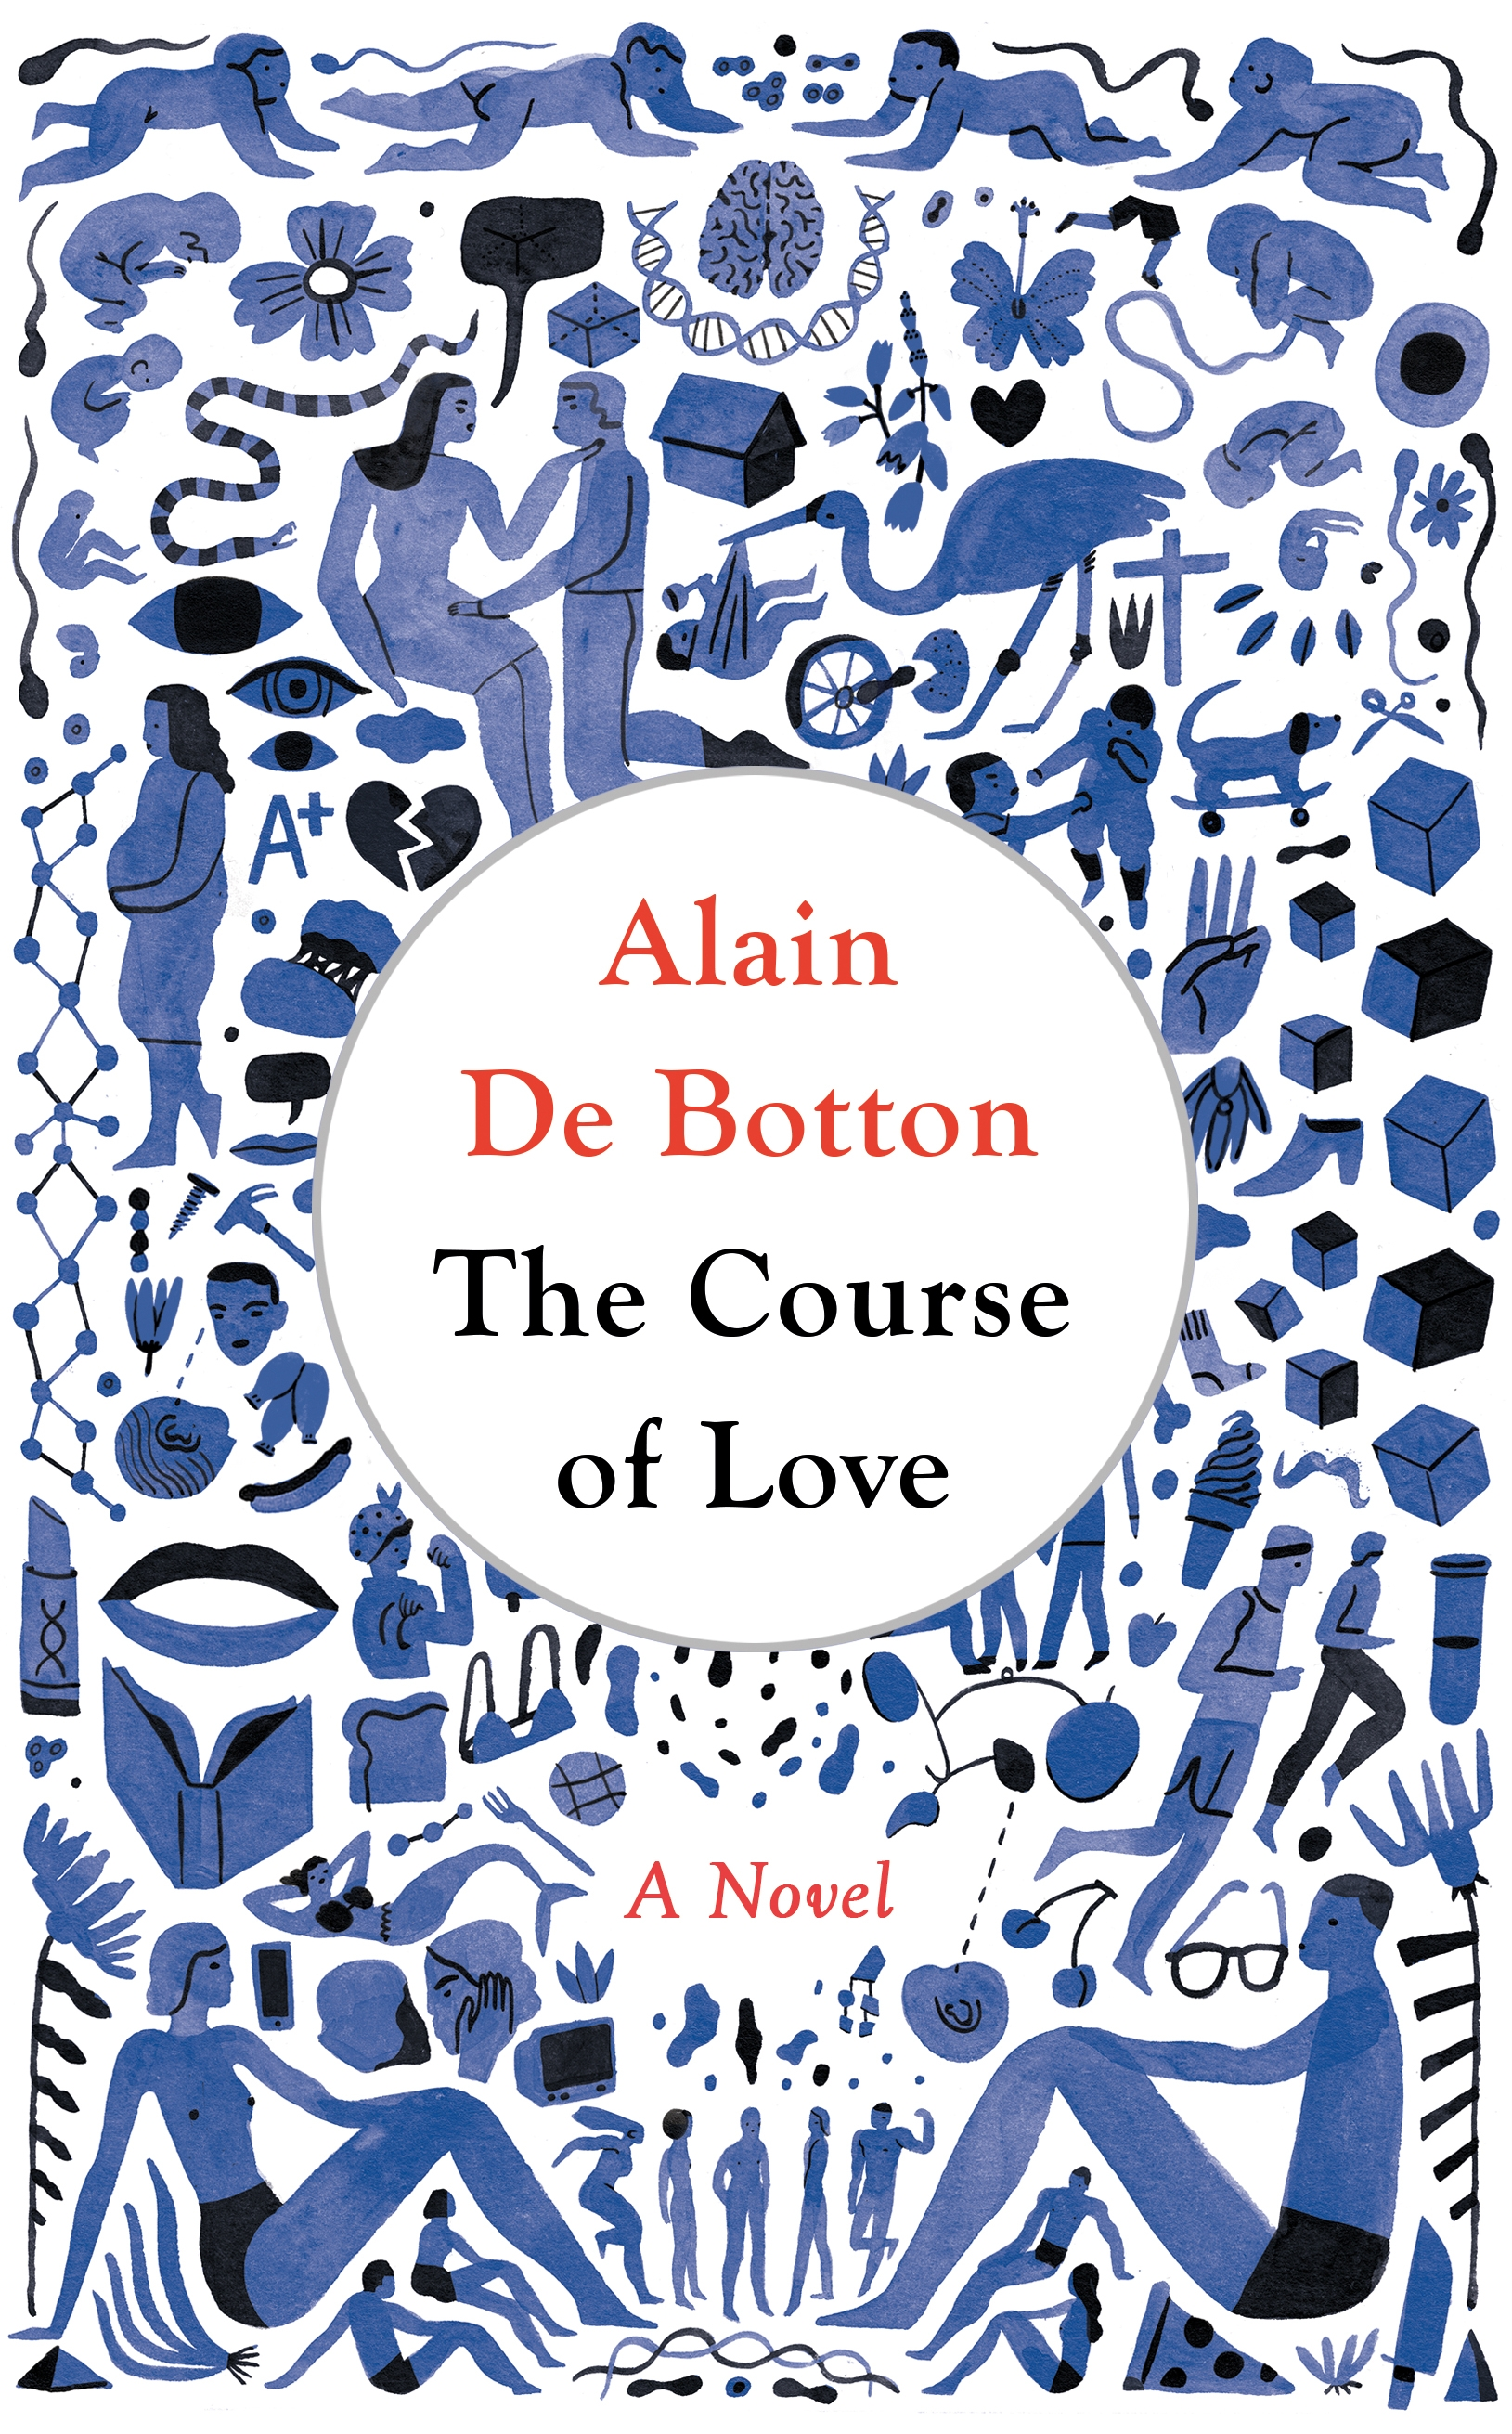 essays on love alain de botton Buy, download and read essays in love ebook online in epub format for iphone, ipad, android, computer and mobile readers author: alain de botton isbn: 9781447275336.